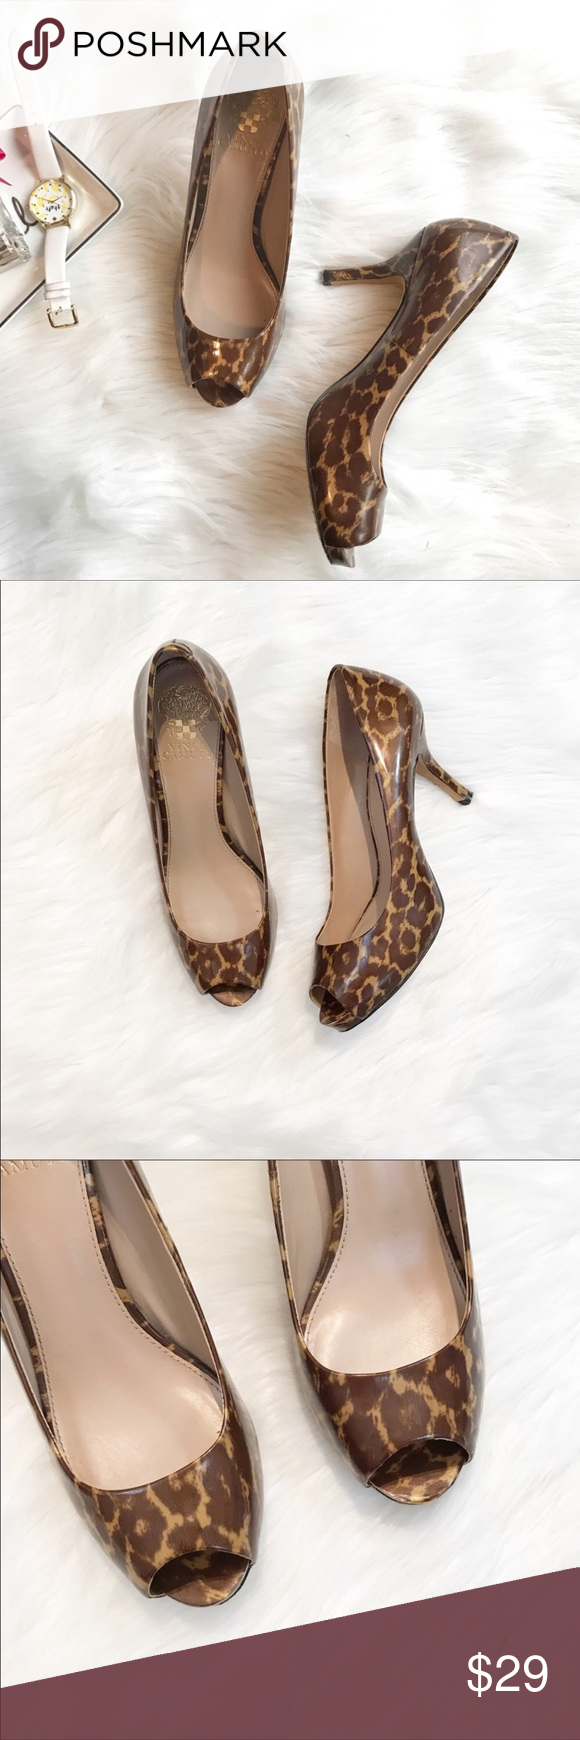 """Vince Camuto Cheetah Heels You'll go WILD over these peep toe pumps!  Leather uppers, minimal wear on soles, some wear on under side of heel (at bottom) these shoes are slightly shimmery cheetah print and are best described as a patent leather. Size 8. Heel is just under 3.5"""". No trades, offers welcome. Vince Camuto Shoes Heels"""